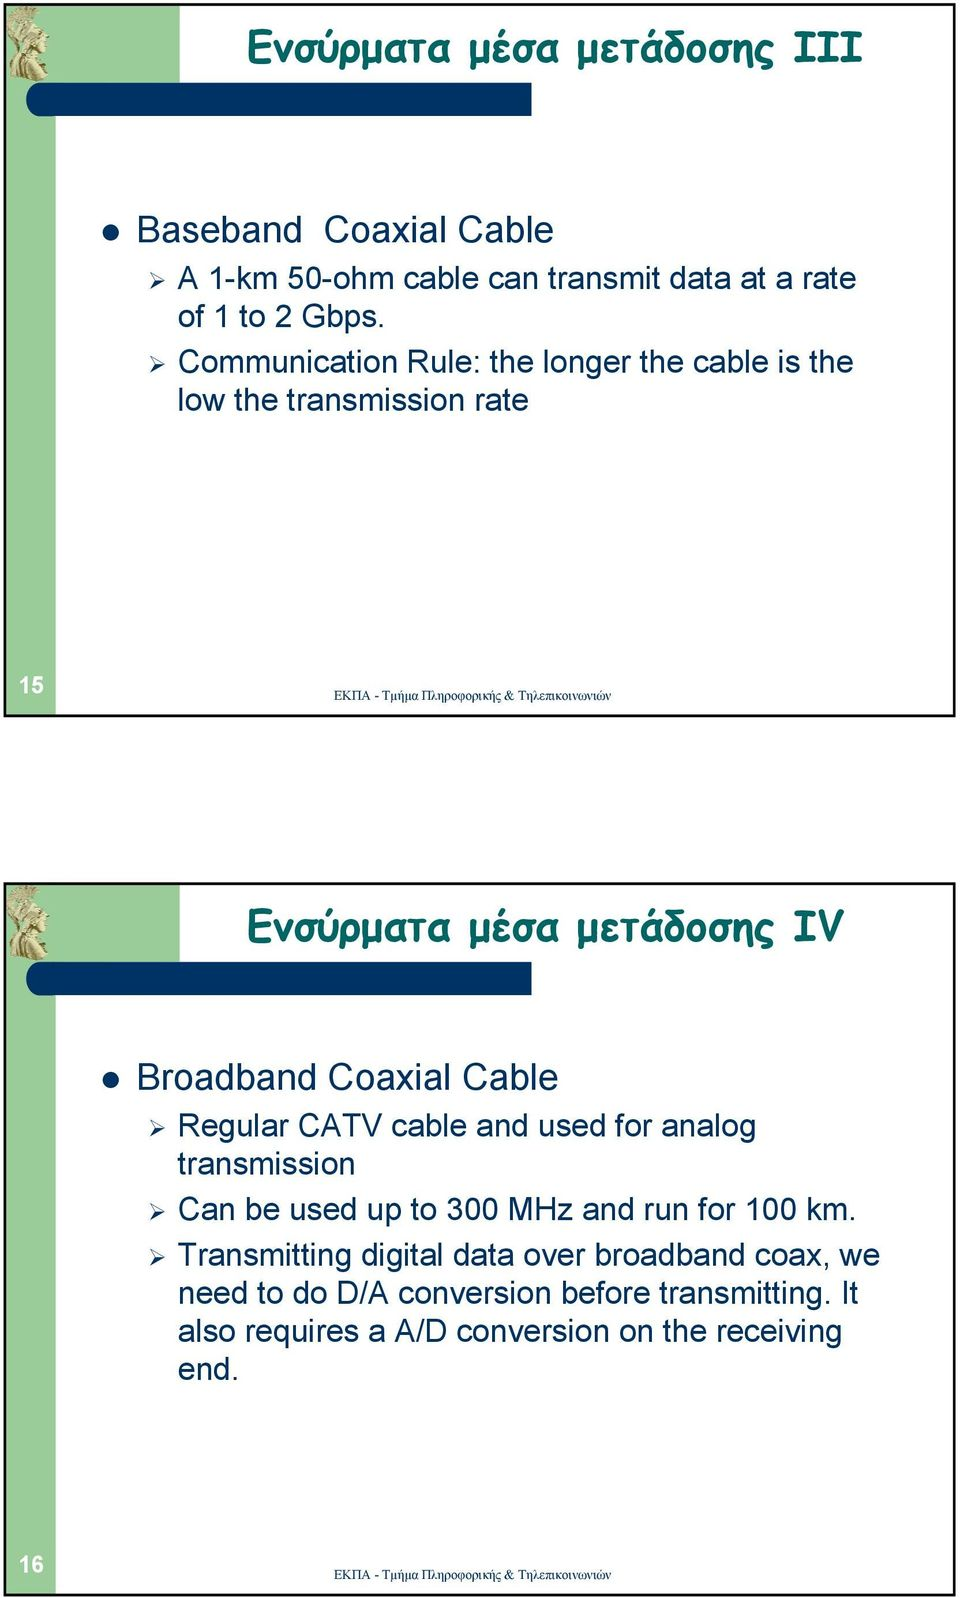 Cable Regular CATV cable and used for analog transmission Can be used up to 300 MHz and run for 100 km.